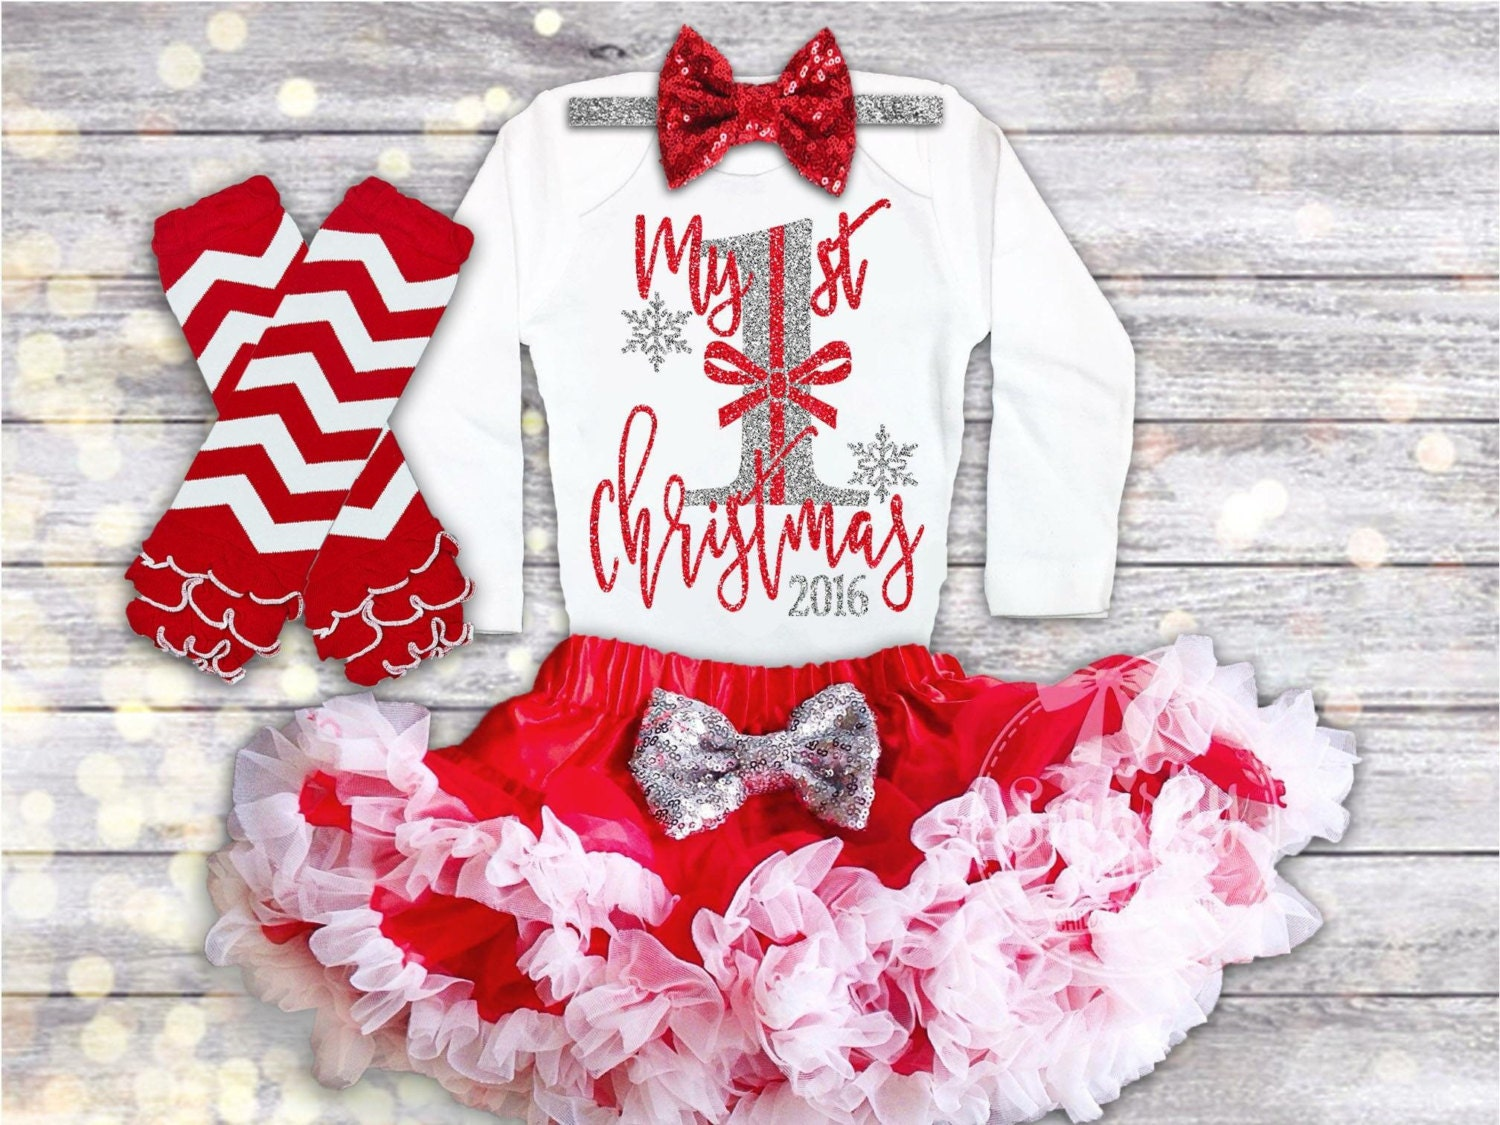 Holiday Dress. My First Christmas. Baby Holiday Photos. Newborn litastmaterlo.gqn Girl Christmas Outfit. pinnyandtunny. 5 out of 5 stars () $ Favorite Add to Baby Christmas Dress, Baby Girl Holiday Dress, Baby Christmas Outfit, Girl Red Dress, months Ready to Ship DiMaDaisyBoutique. 5 out of 5 stars () $